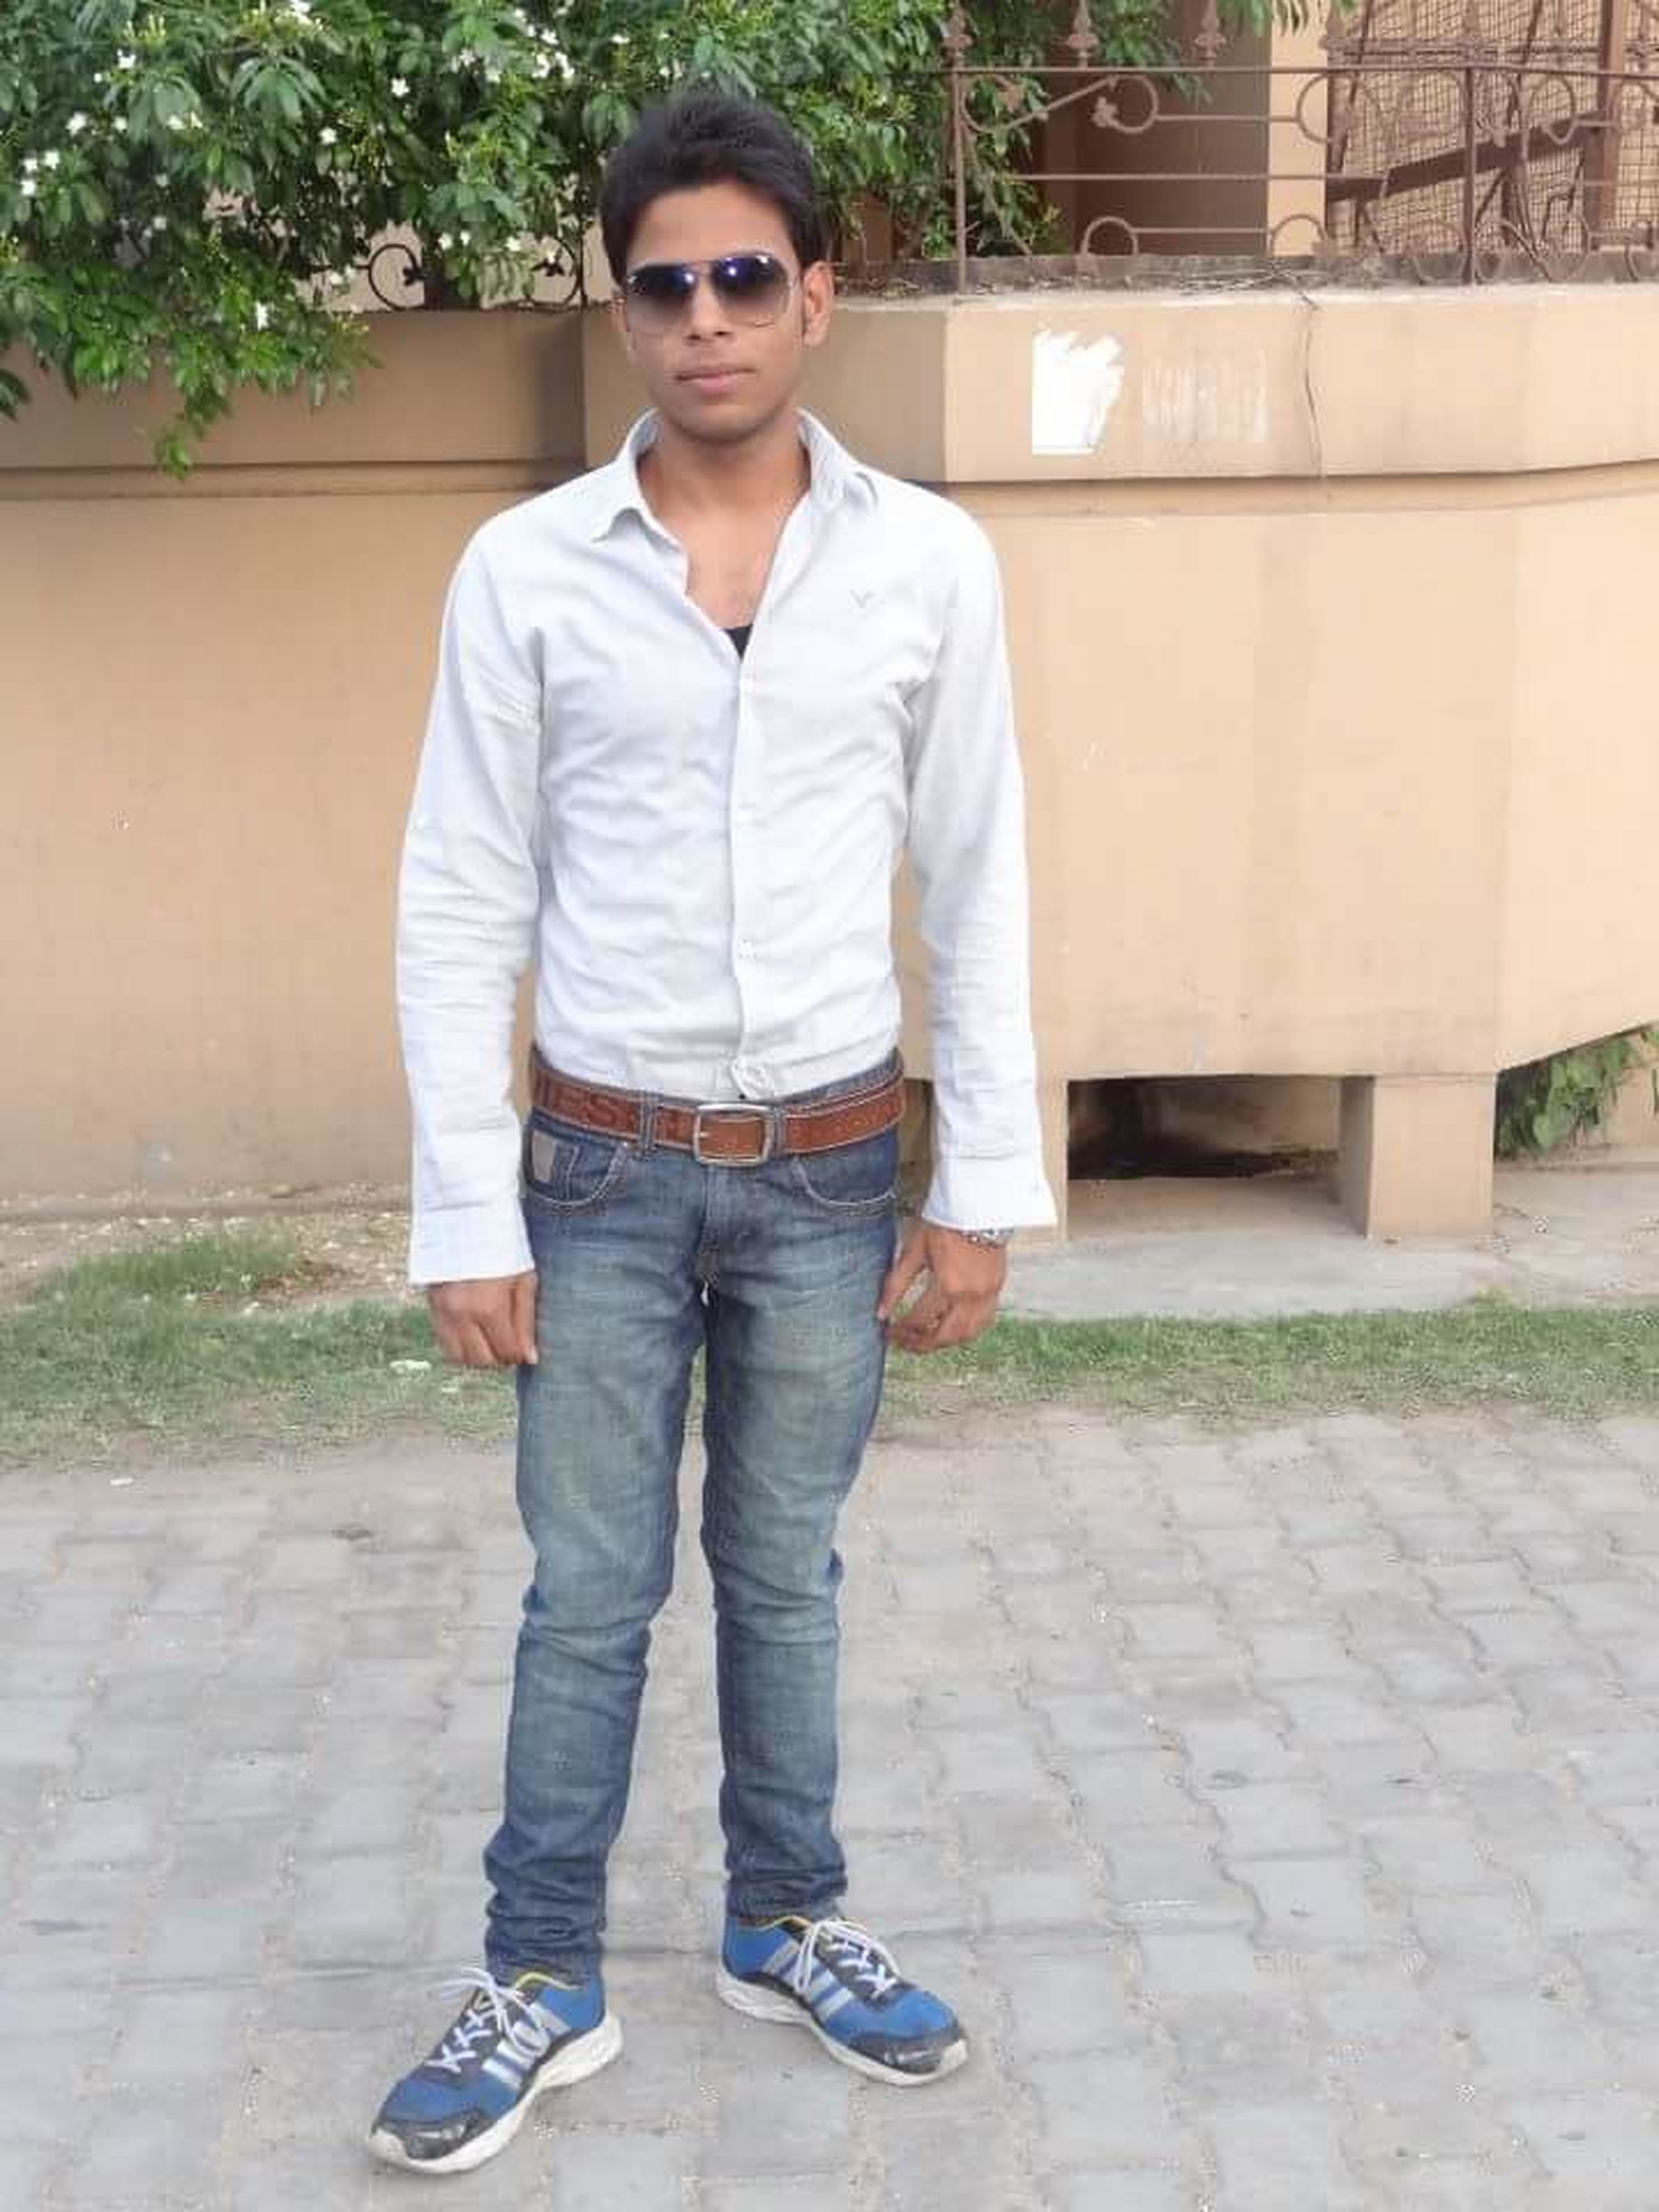 looking at camera, casual clothing, portrait, person, front view, lifestyles, standing, young adult, full length, leisure activity, smiling, young men, jeans, three quarter length, hands in pockets, sunglasses, happiness